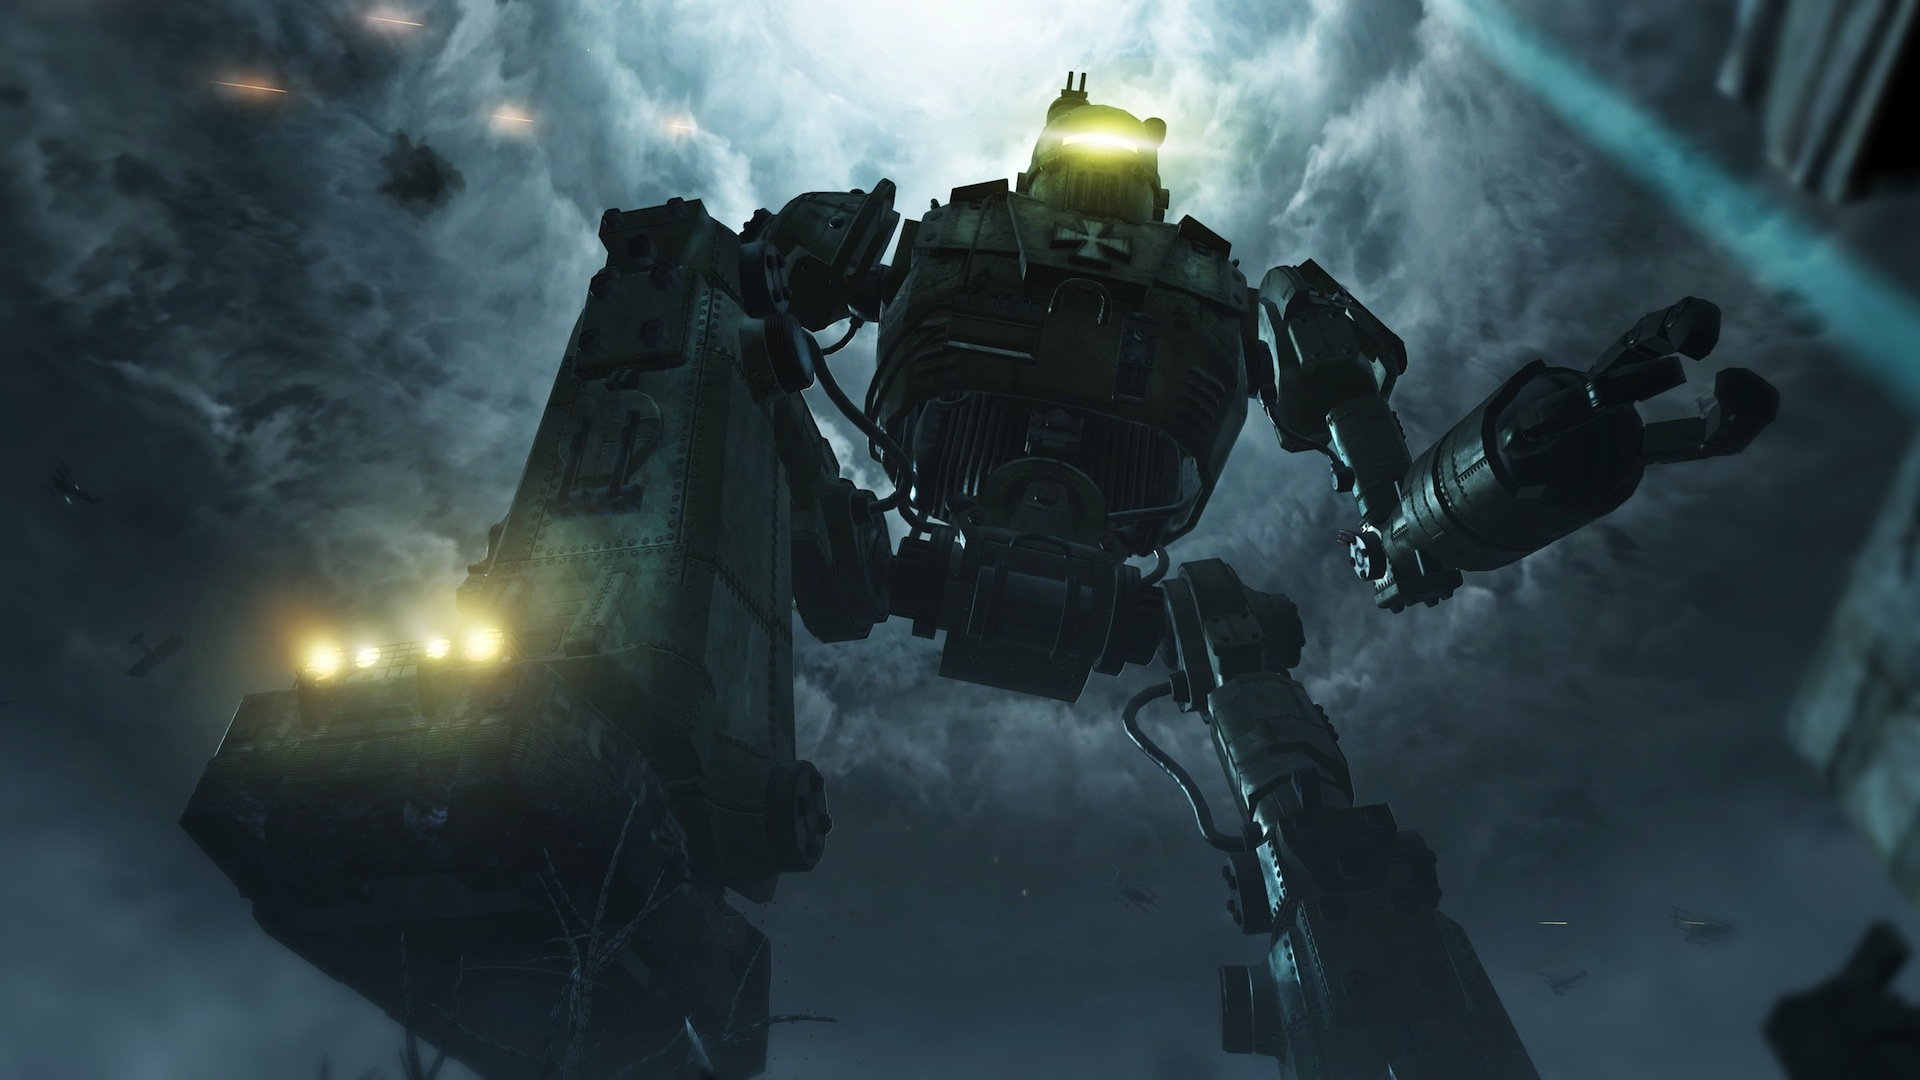 call of duty black ops 3 zombies maps with Giant Robot on Content Collection 1 likewise Coalescence Corporation moreover 5 Official Concept Art Images For Advanced Warfare Reckoning Dlc also File Seraph BO3 additionally Underpass.